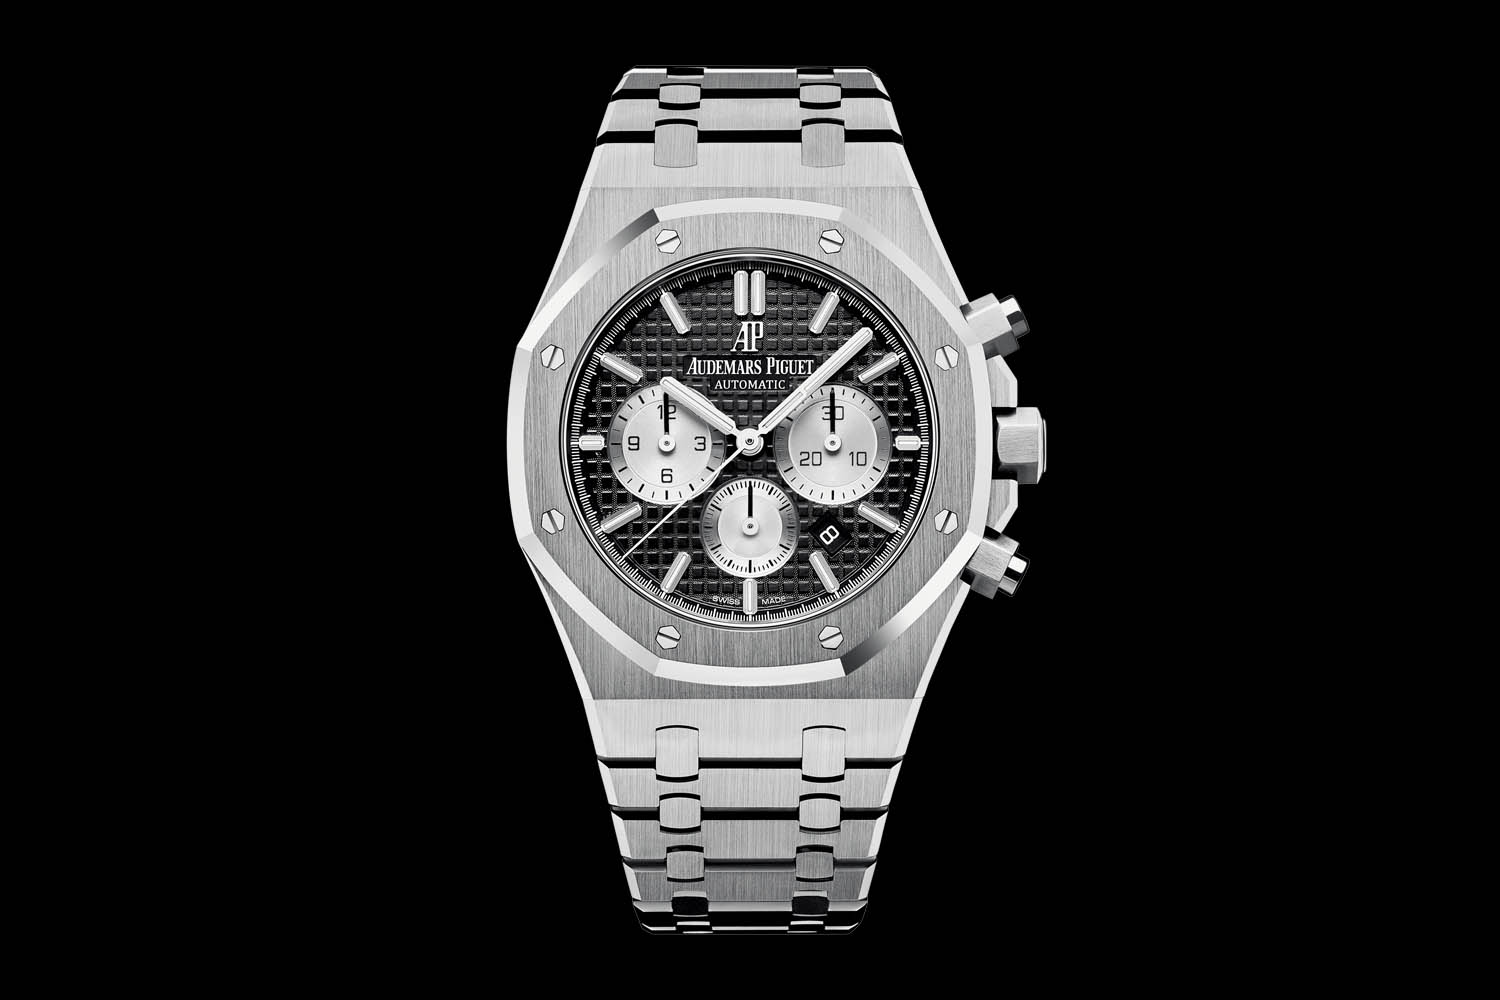 585f4dd9c55 SIHH 2017 – Audemars Piguet Introduces the Refreshed Royal Oak Chronograph.